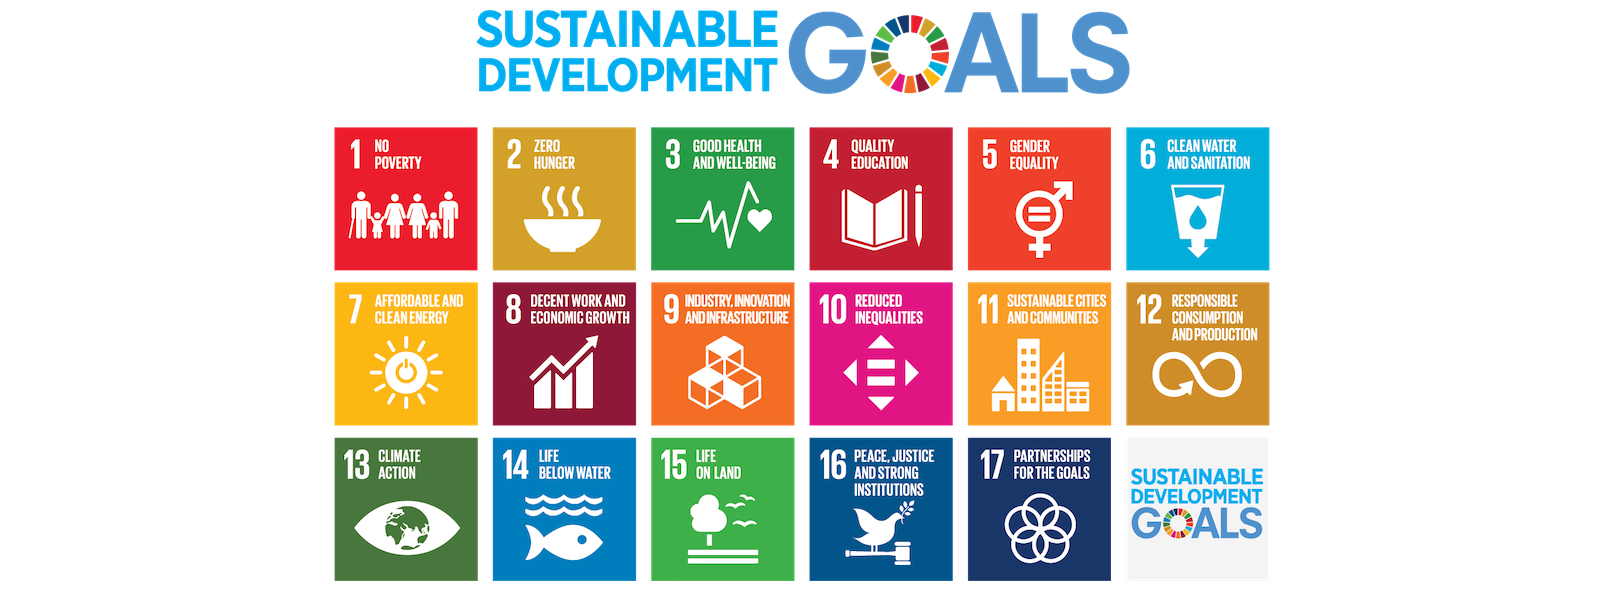 Icons of the 17 sustainable development goals of the United Nations